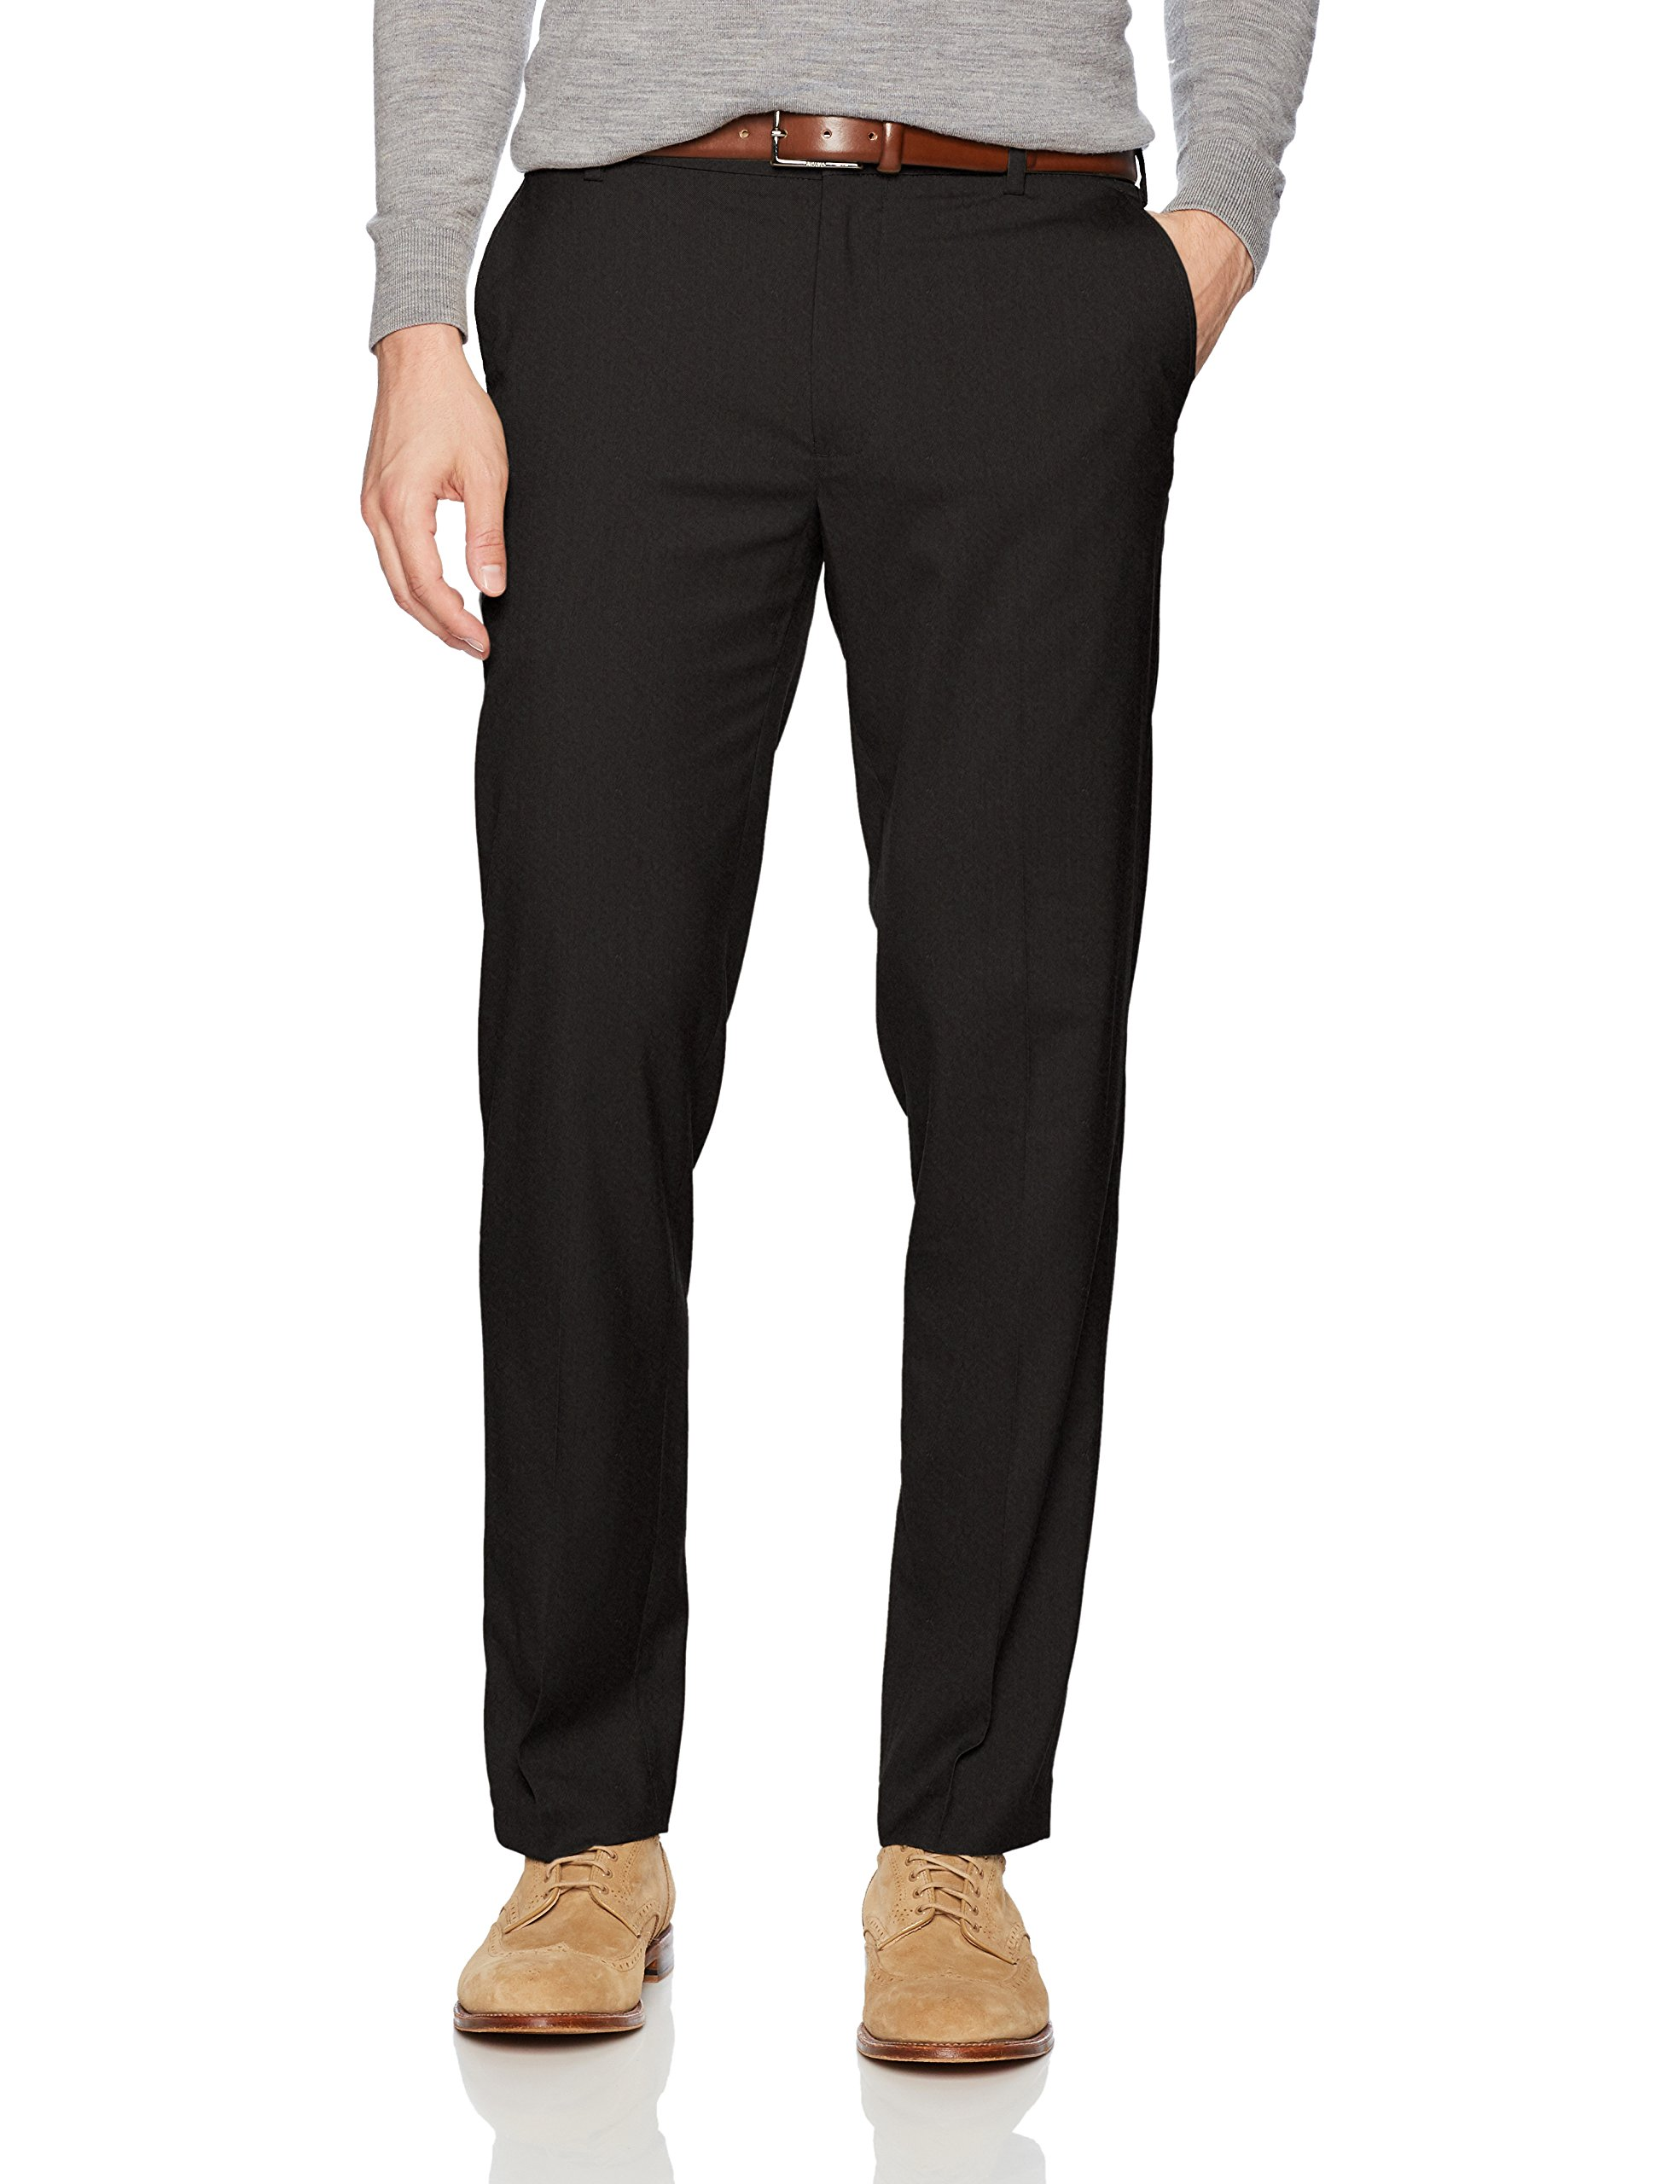 Van Heusen Men's Air Straight Fit Pant, Black, 33W X 30L by Van Heusen (Image #1)